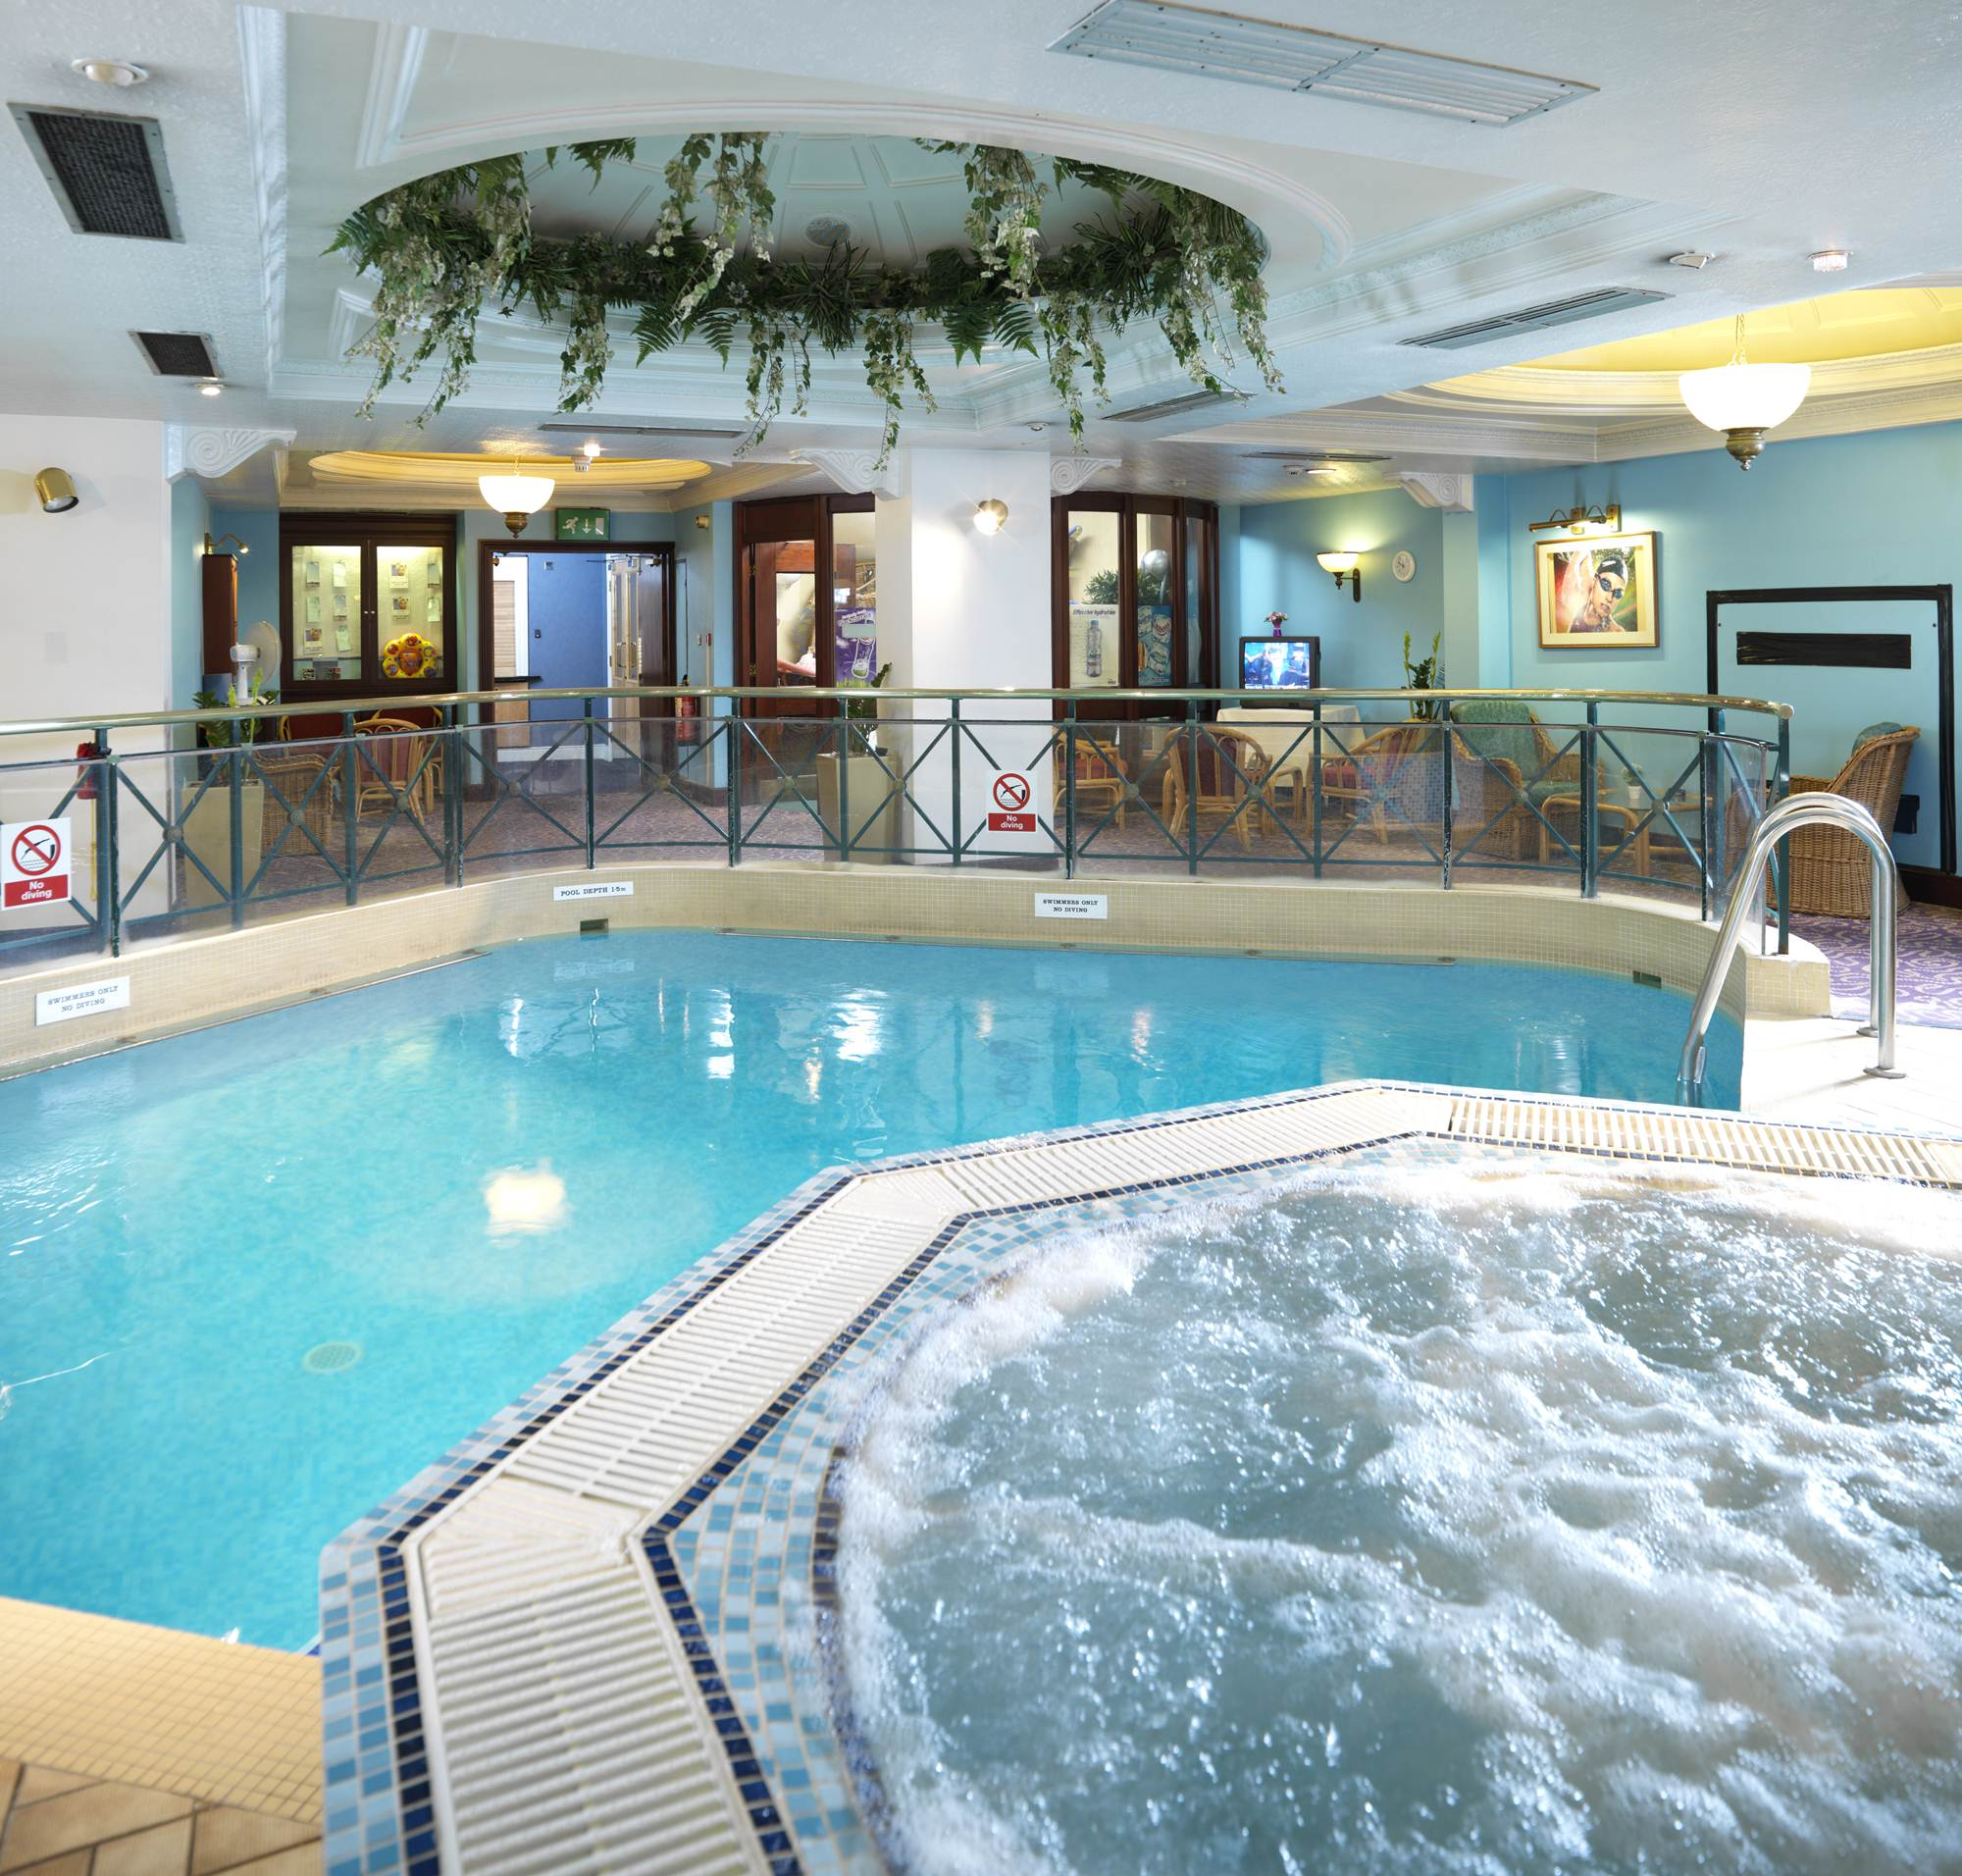 Ibis styles manchester portland in manchester from 62 - Swimming pool manchester city centre ...